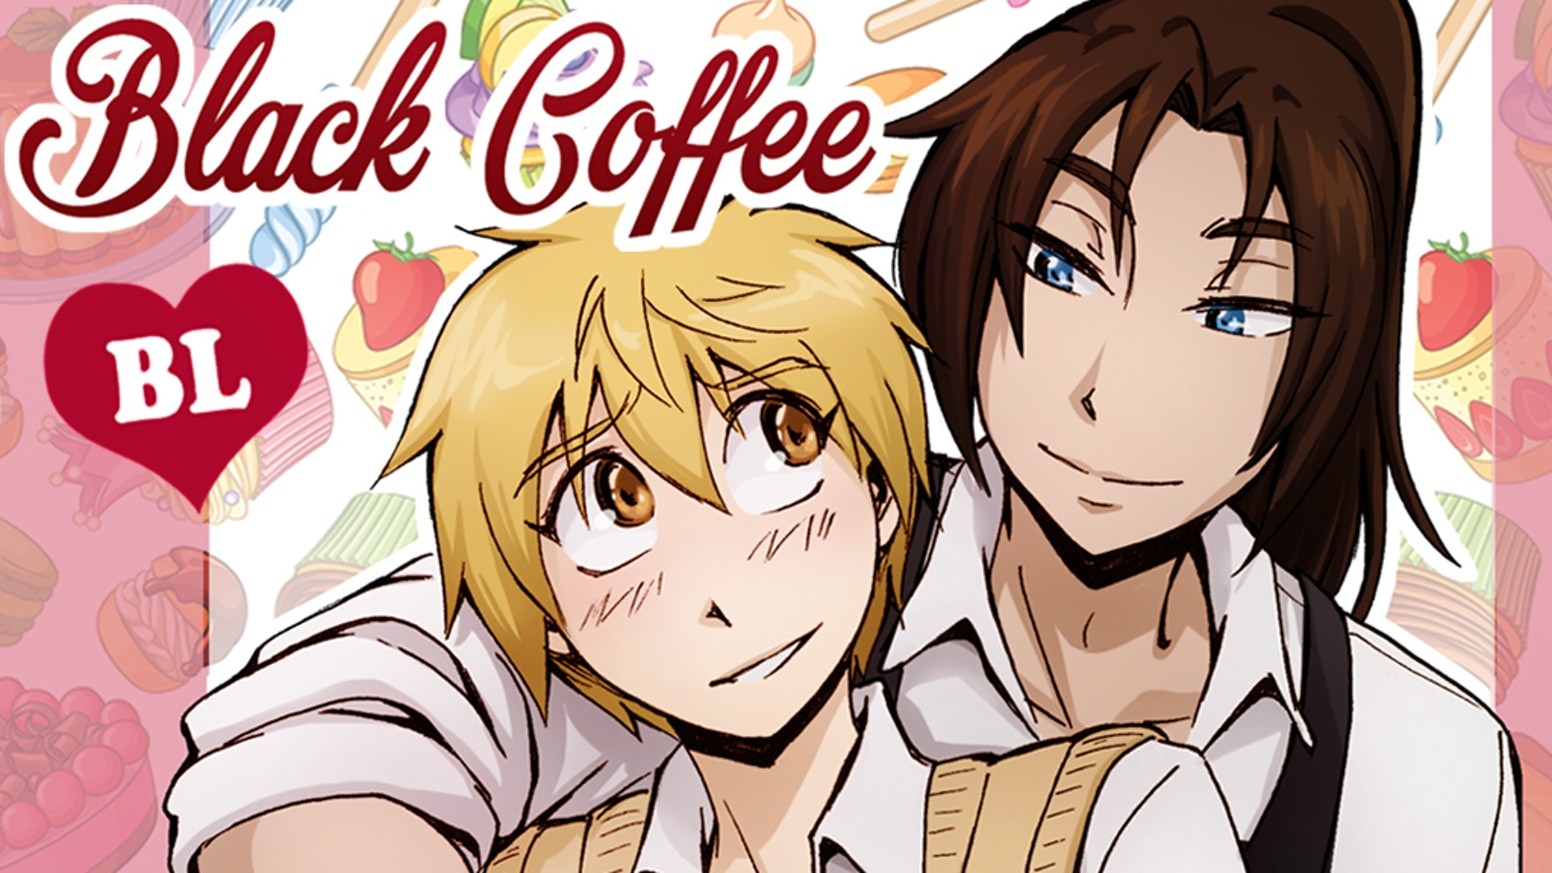 Black coffee is a 37 page original manga oneshot meaning it is a